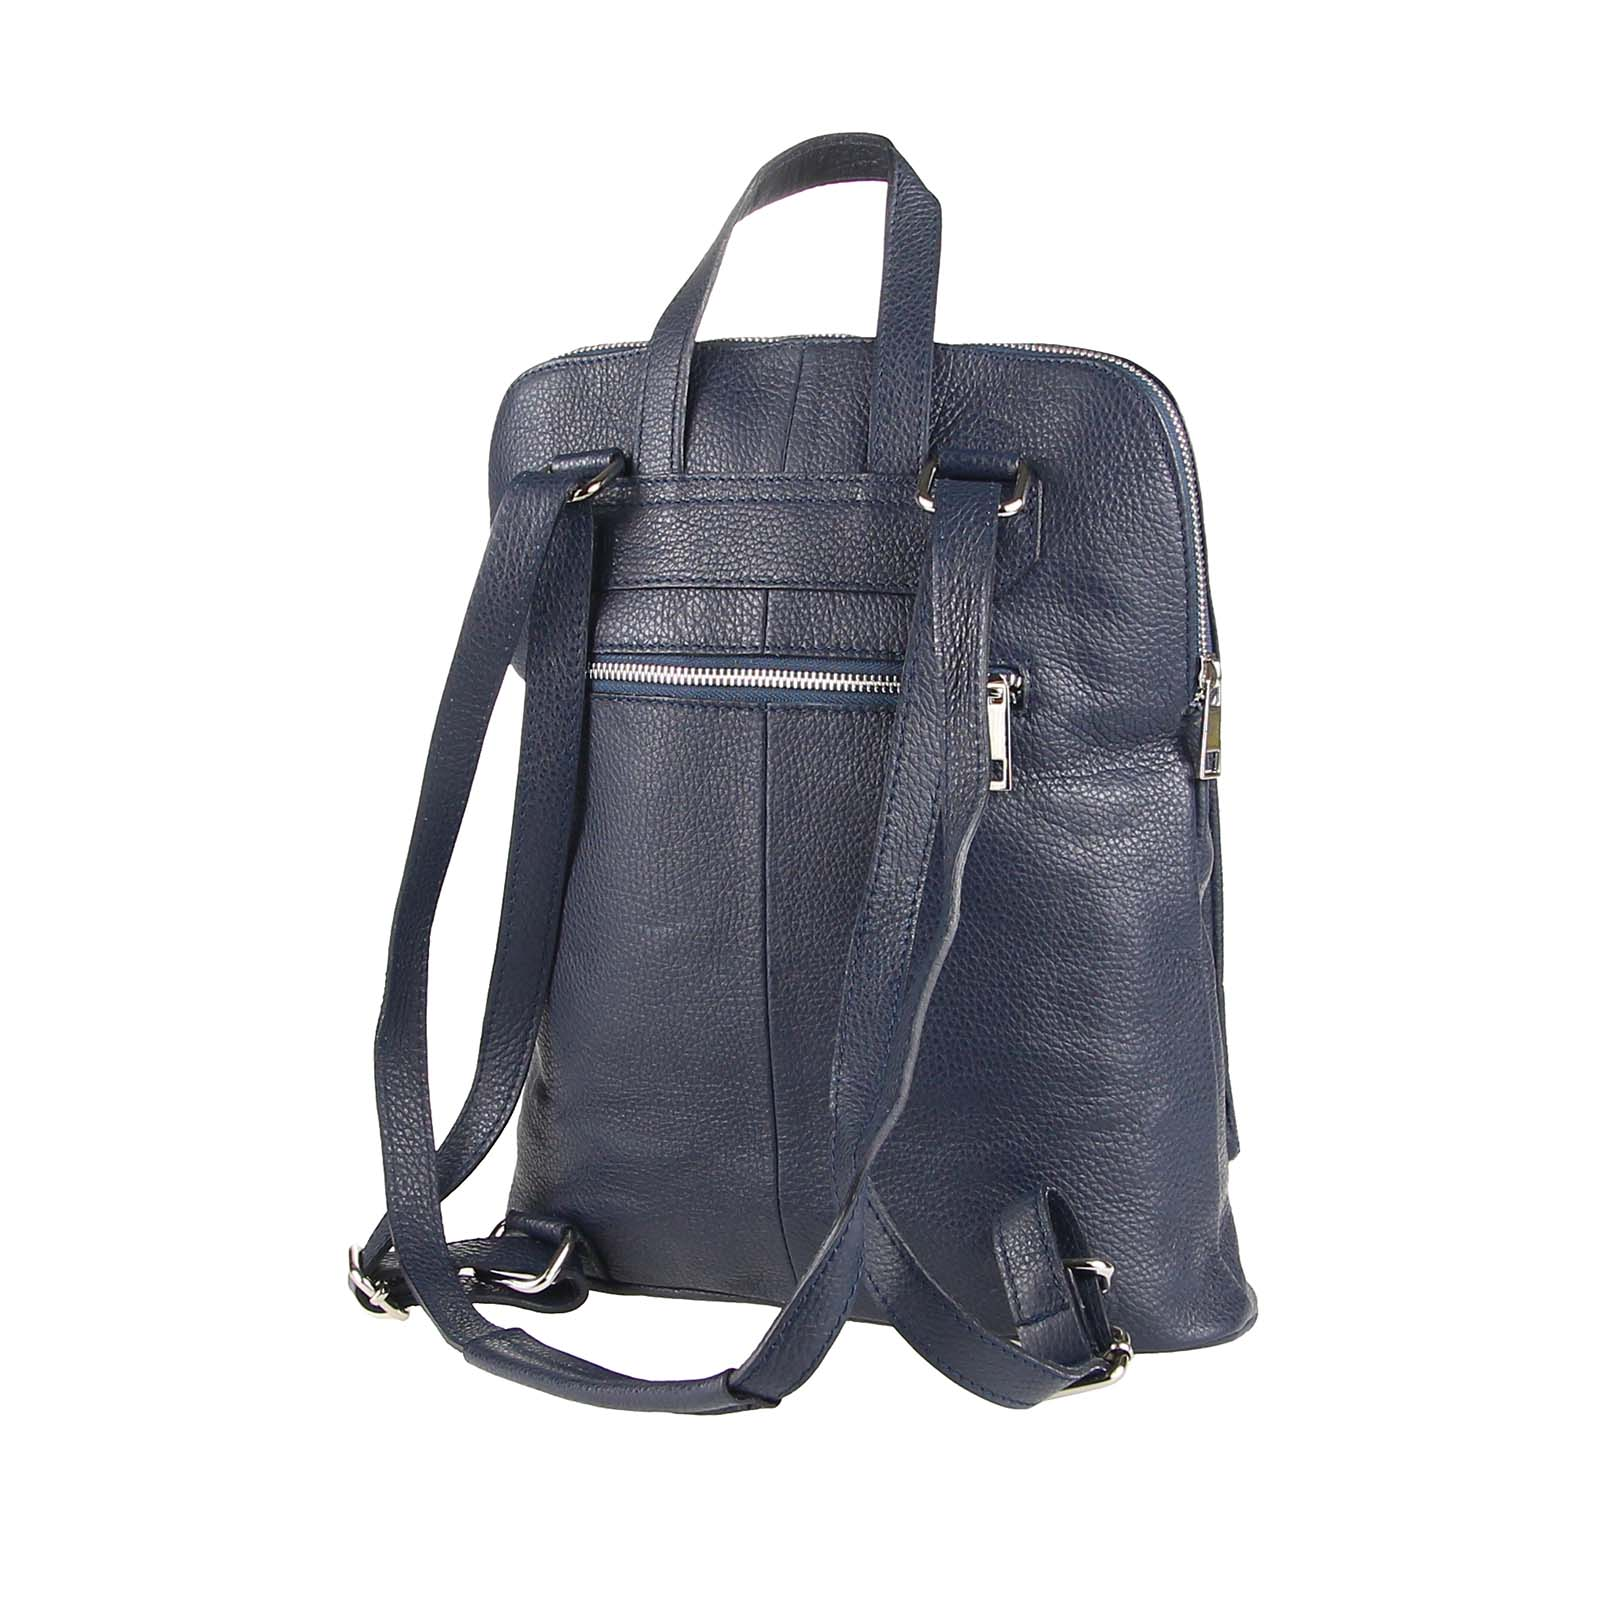 ITALy-DAMEN-LEDER-Reise-RUCKSACK-SchulterTasche-Shopper-Backpack-Ledertasche-BAG Indexbild 43